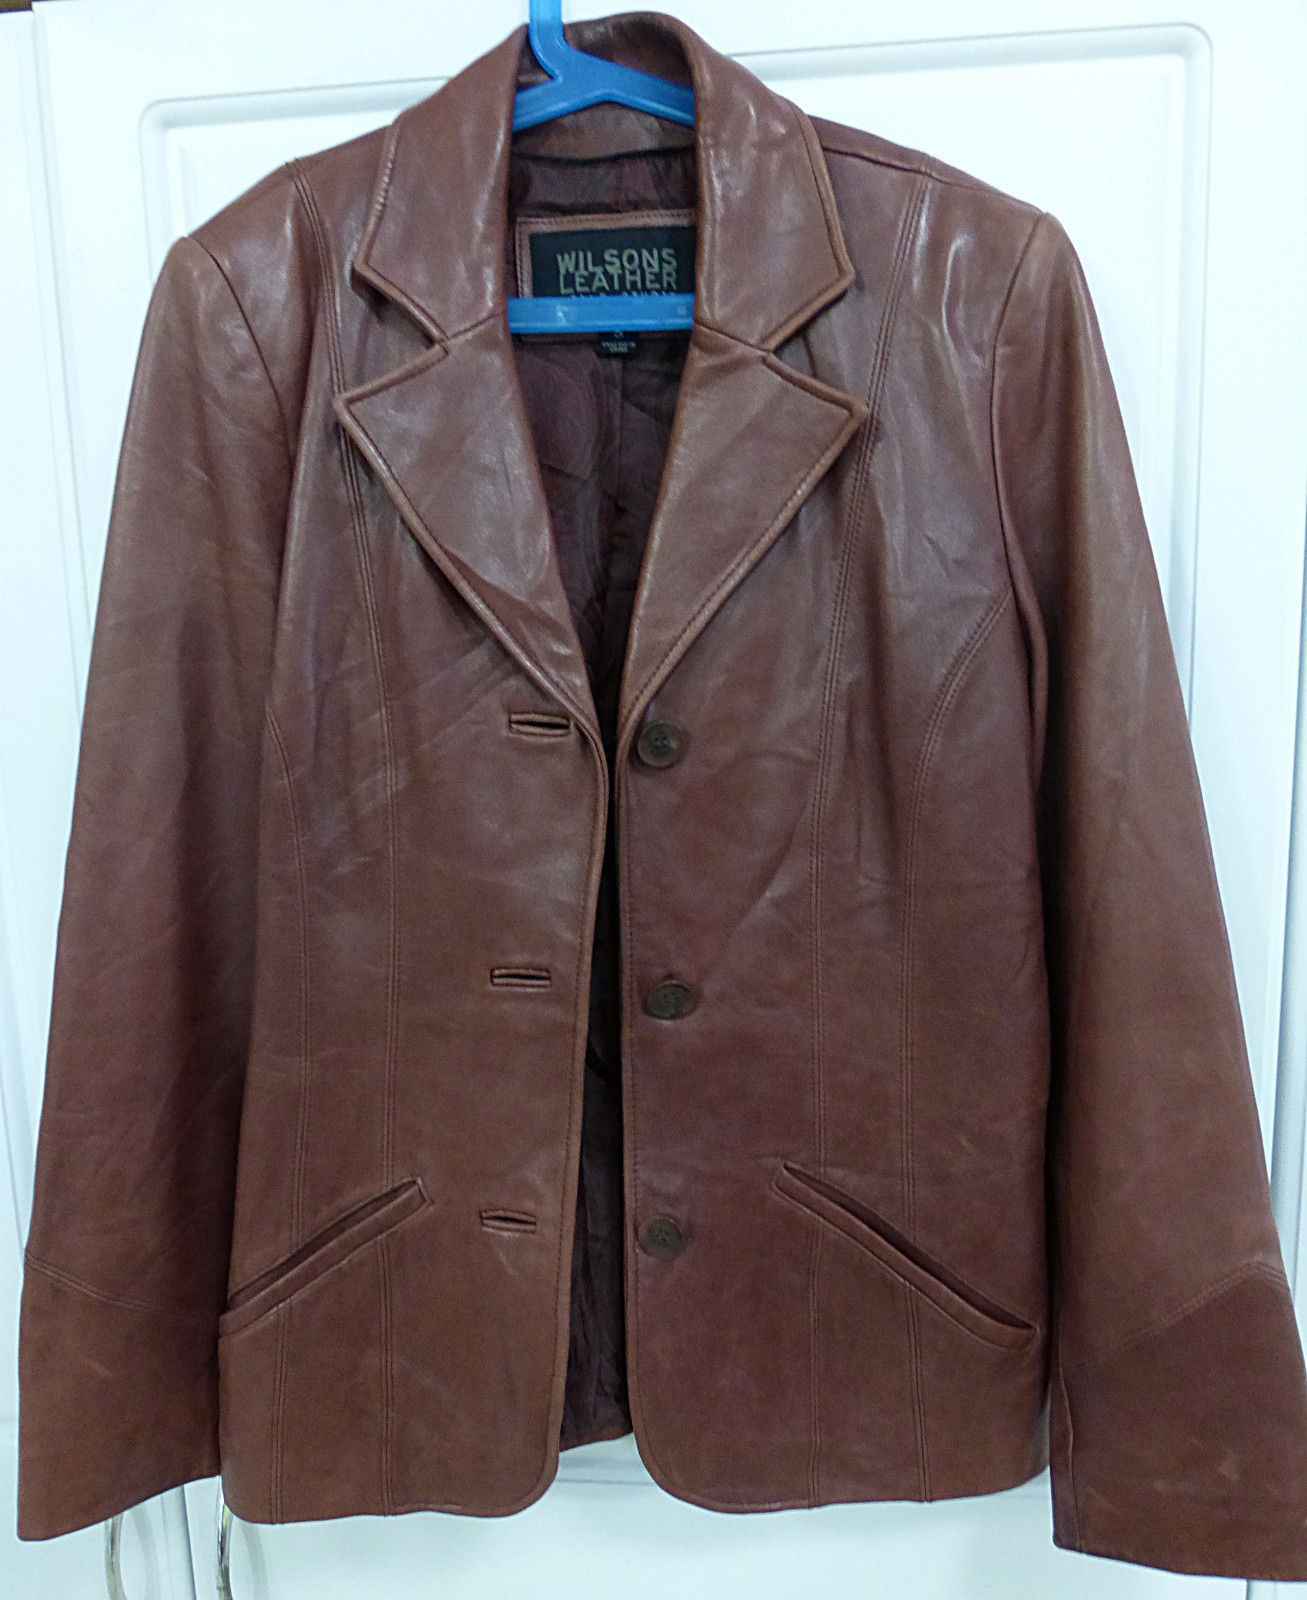 Wilsons leather pelle studio women`s solid brown leather jacket size S